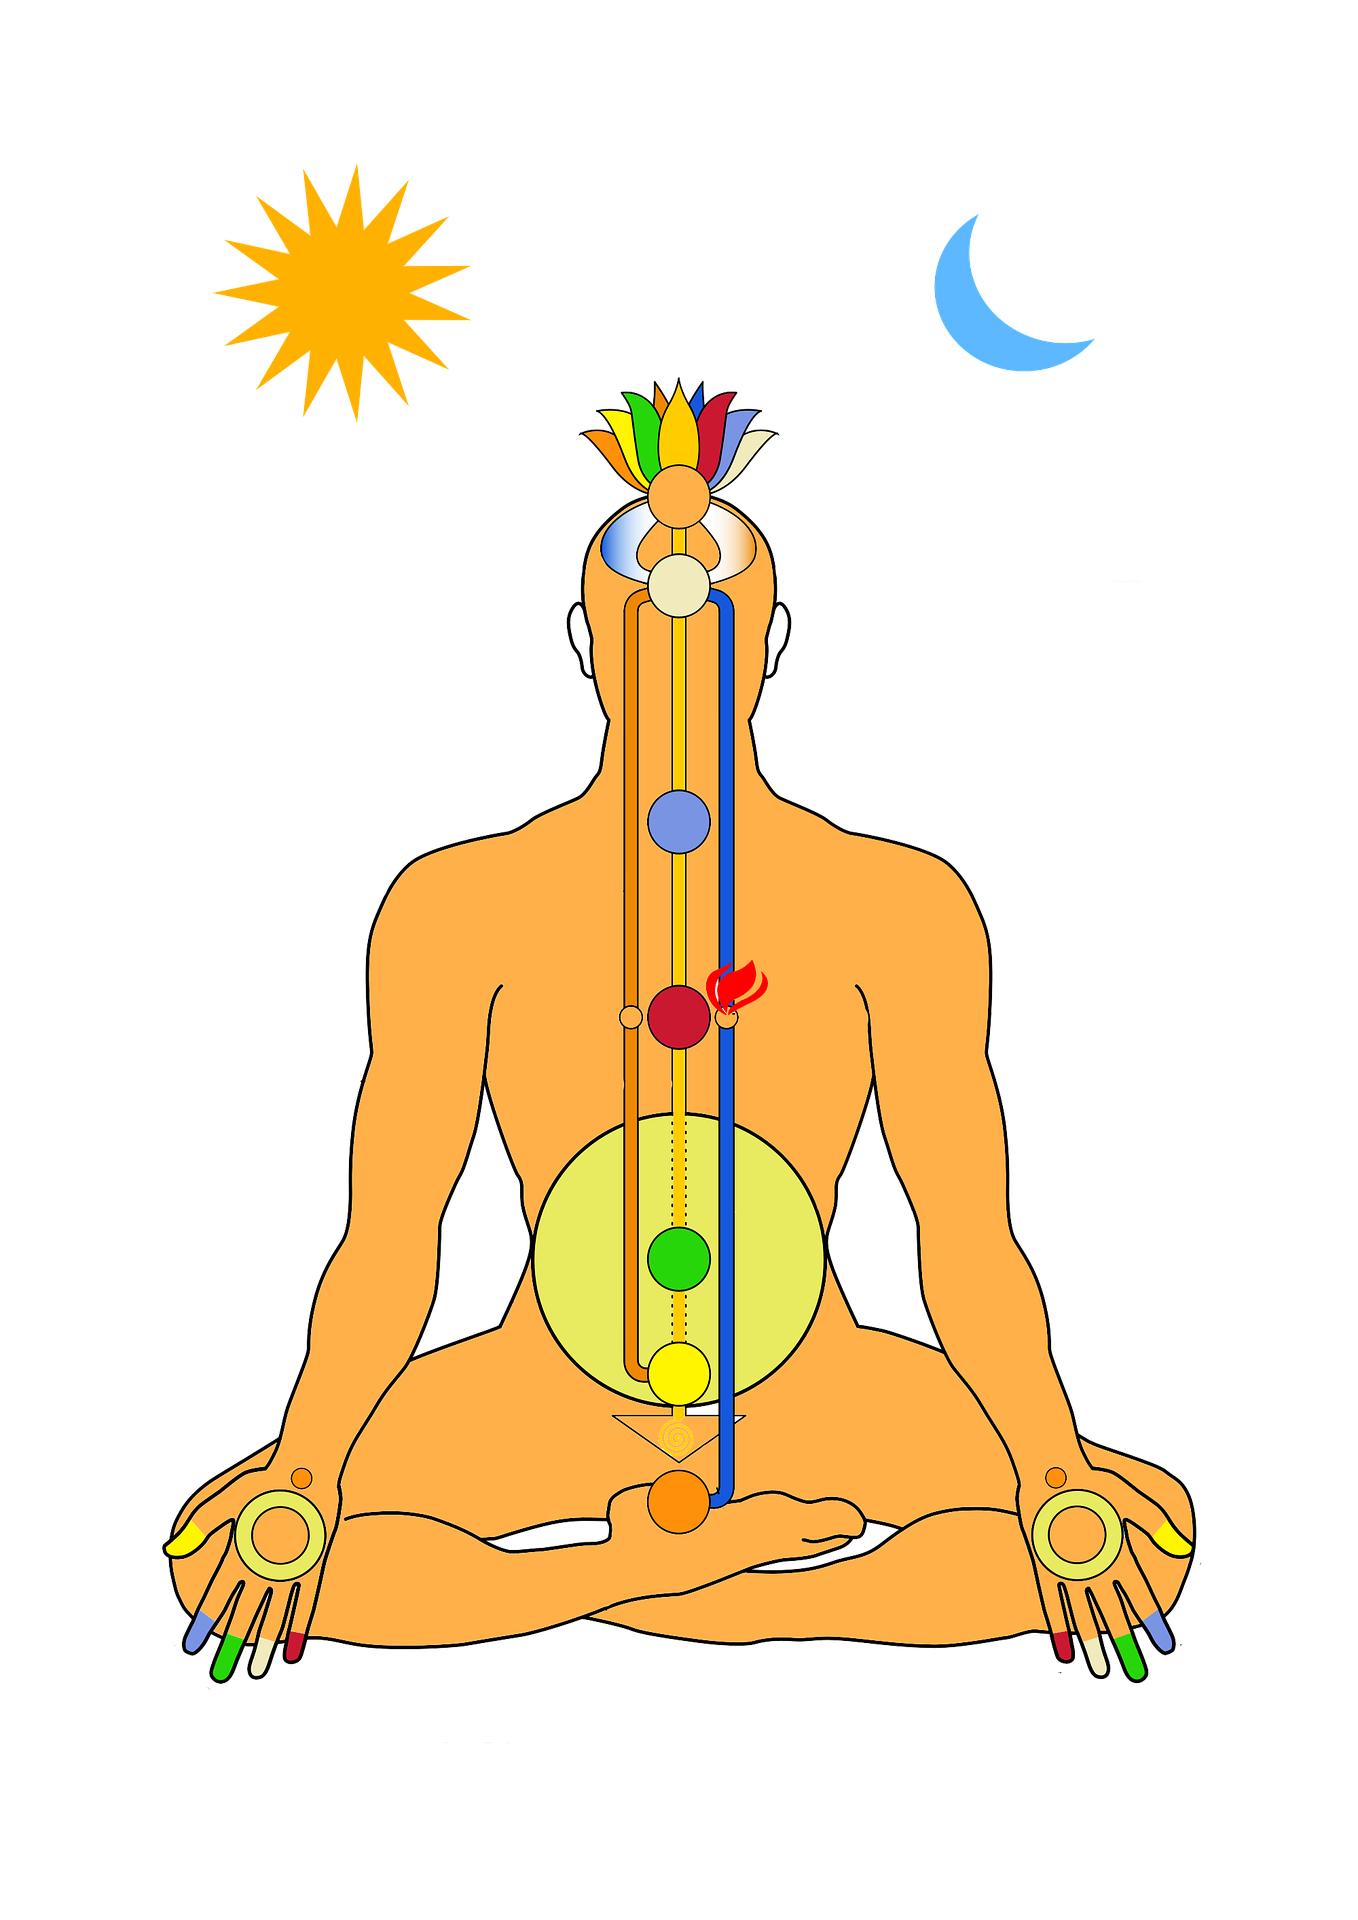 "Why are chakras so important to our well-being?<span class=""rating-result after_title mr-filter rating-result-4650"" >	<span class=""mr-star-rating"">			    <i class=""fa fa-star mr-star-full""></i>	    	    <i class=""fa fa-star mr-star-full""></i>	    	    <i class=""fa fa-star mr-star-full""></i>	    	    <i class=""fa fa-star mr-star-full""></i>	    	    <i class=""fa fa-star mr-star-full""></i>	    </span><span class=""star-result"">	5/5</span>			<span class=""count"">				(1)			</span>			</span>"